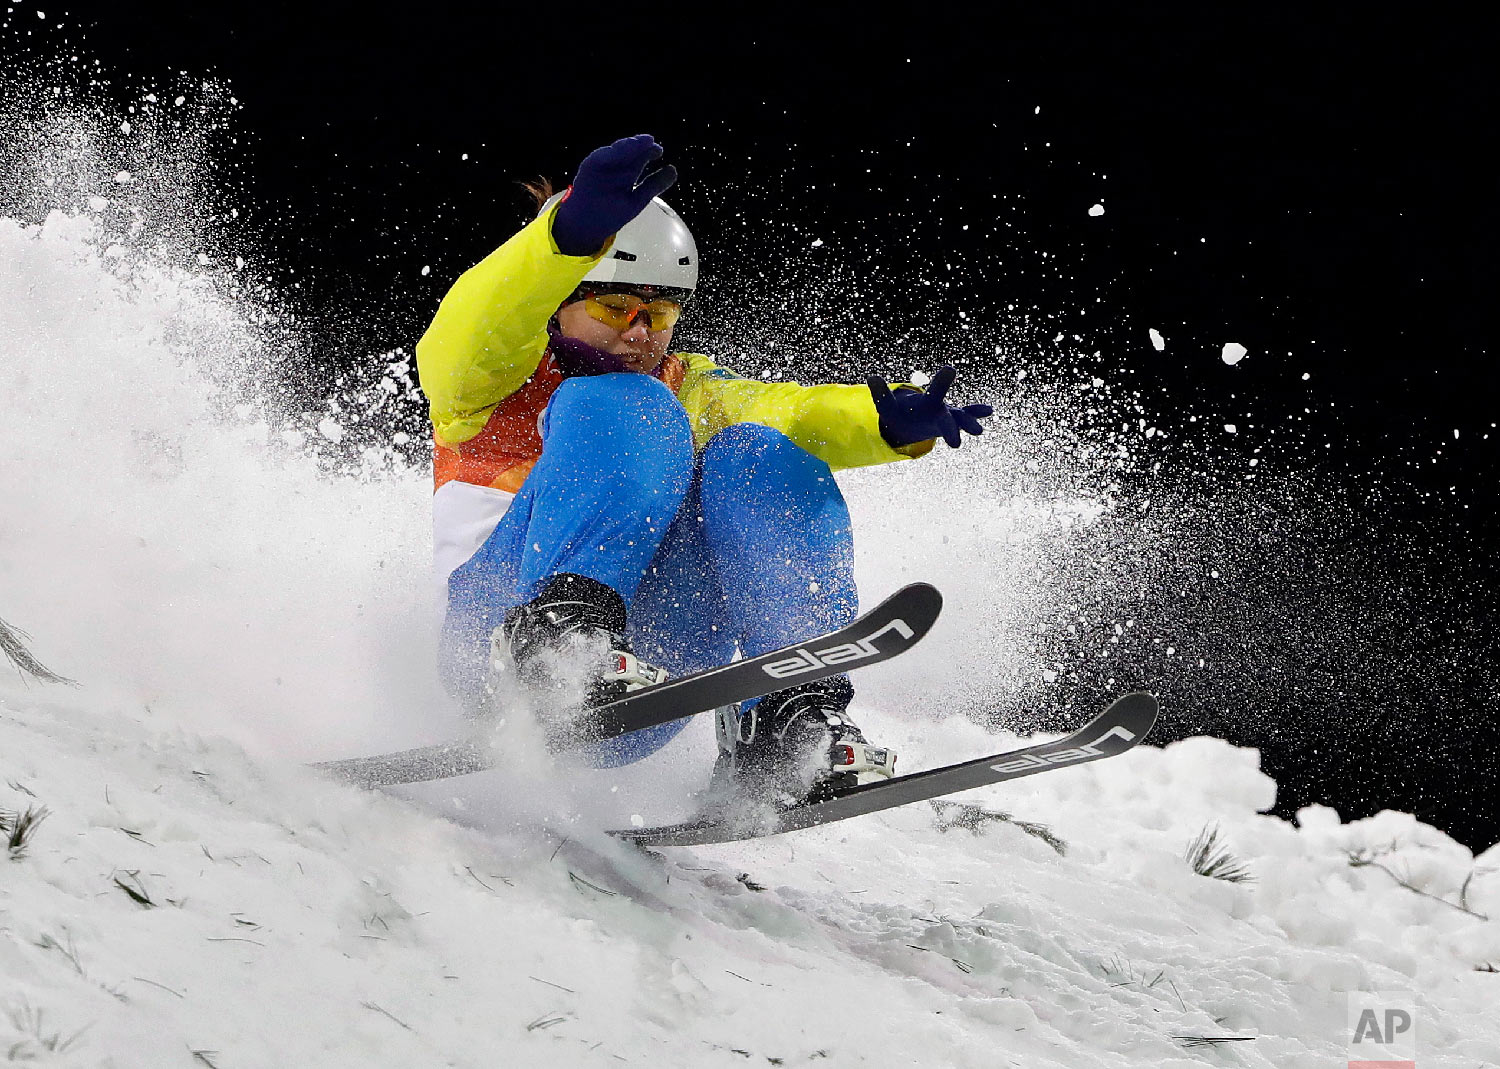 AyanaZholdas, of Kazakhstan, crashes during the women's aerials qualifying at Phoenix Snow Park at the 2018 Winter Olympics in Pyeongchang, South Korea, Thursday, Feb. 15, 2018. (AP Photo/Gregory Bull)